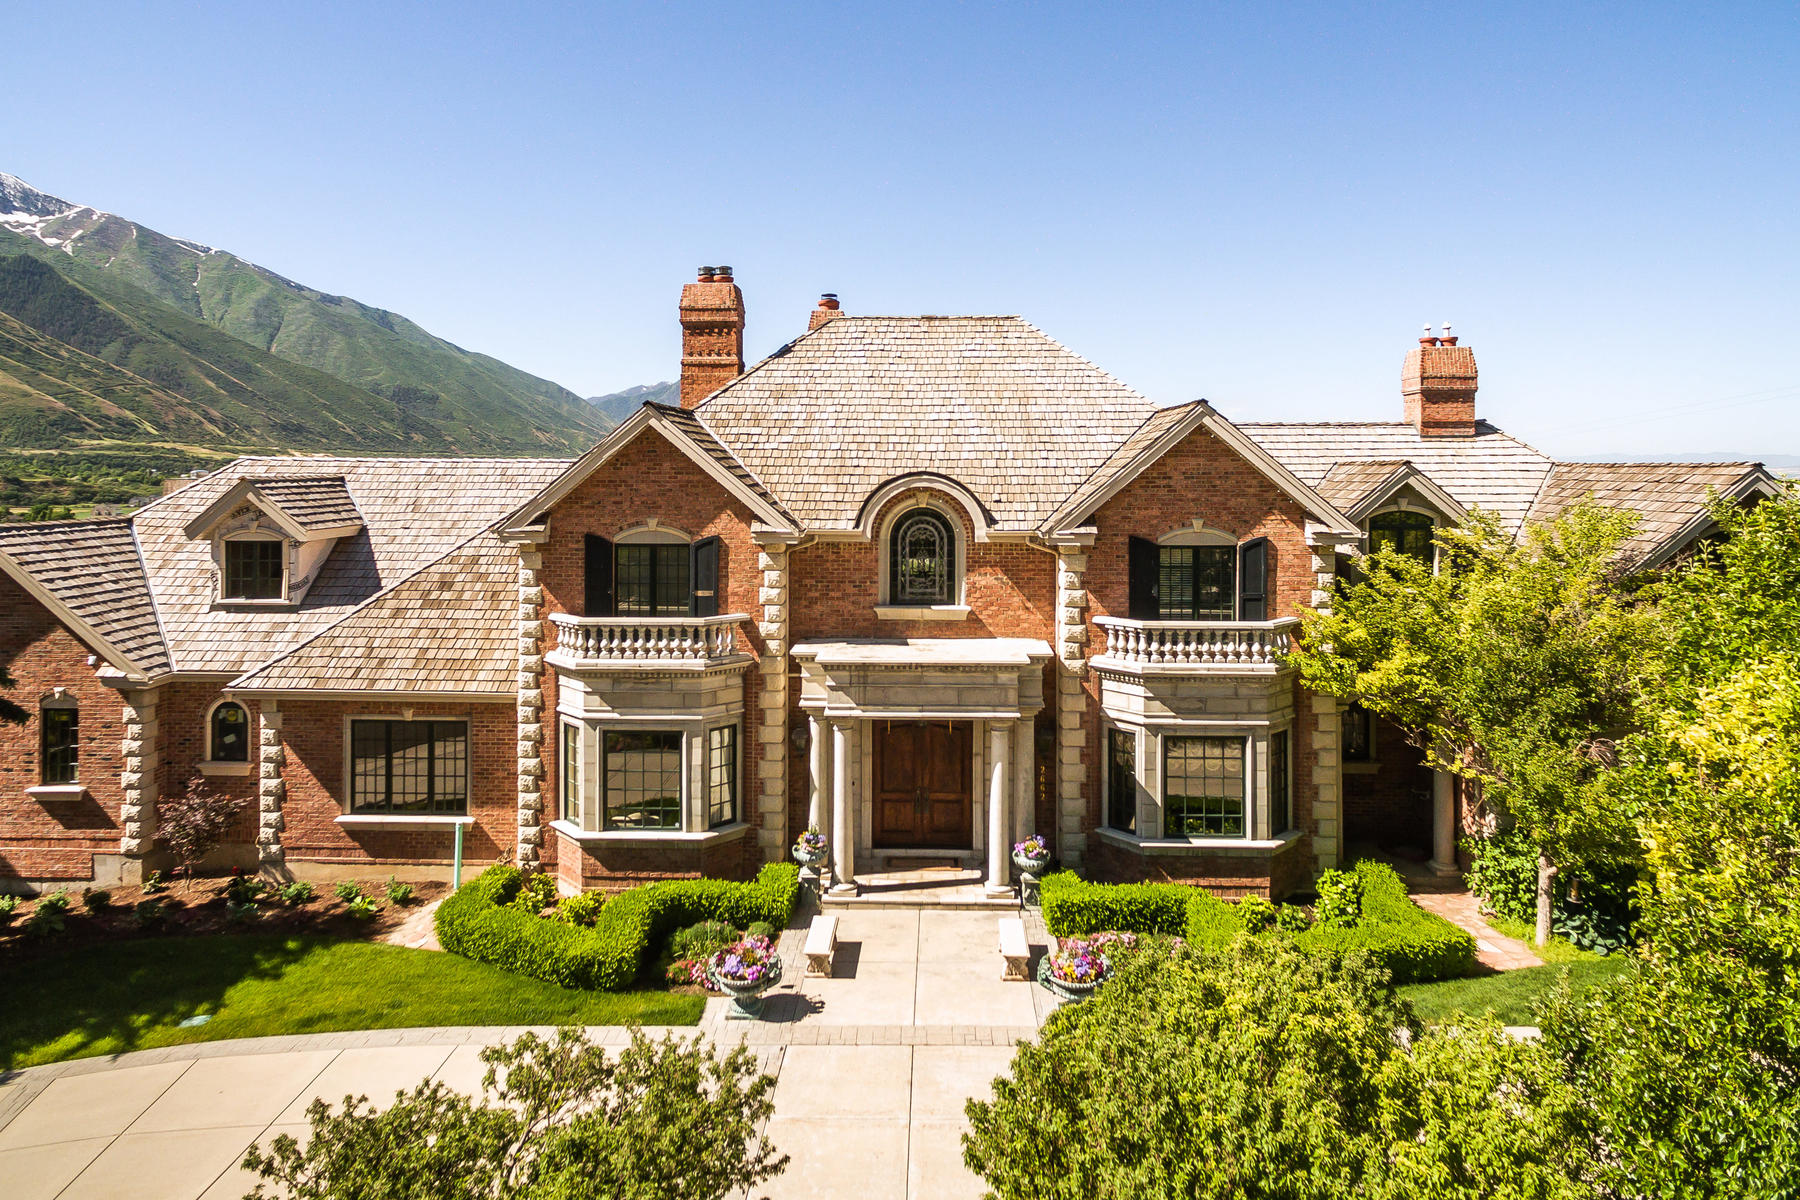 Single Family Homes for Active at Luxury Estate with Incredible Views 2662 E Stonebury Loop Rd Springville, Utah 84663 United States